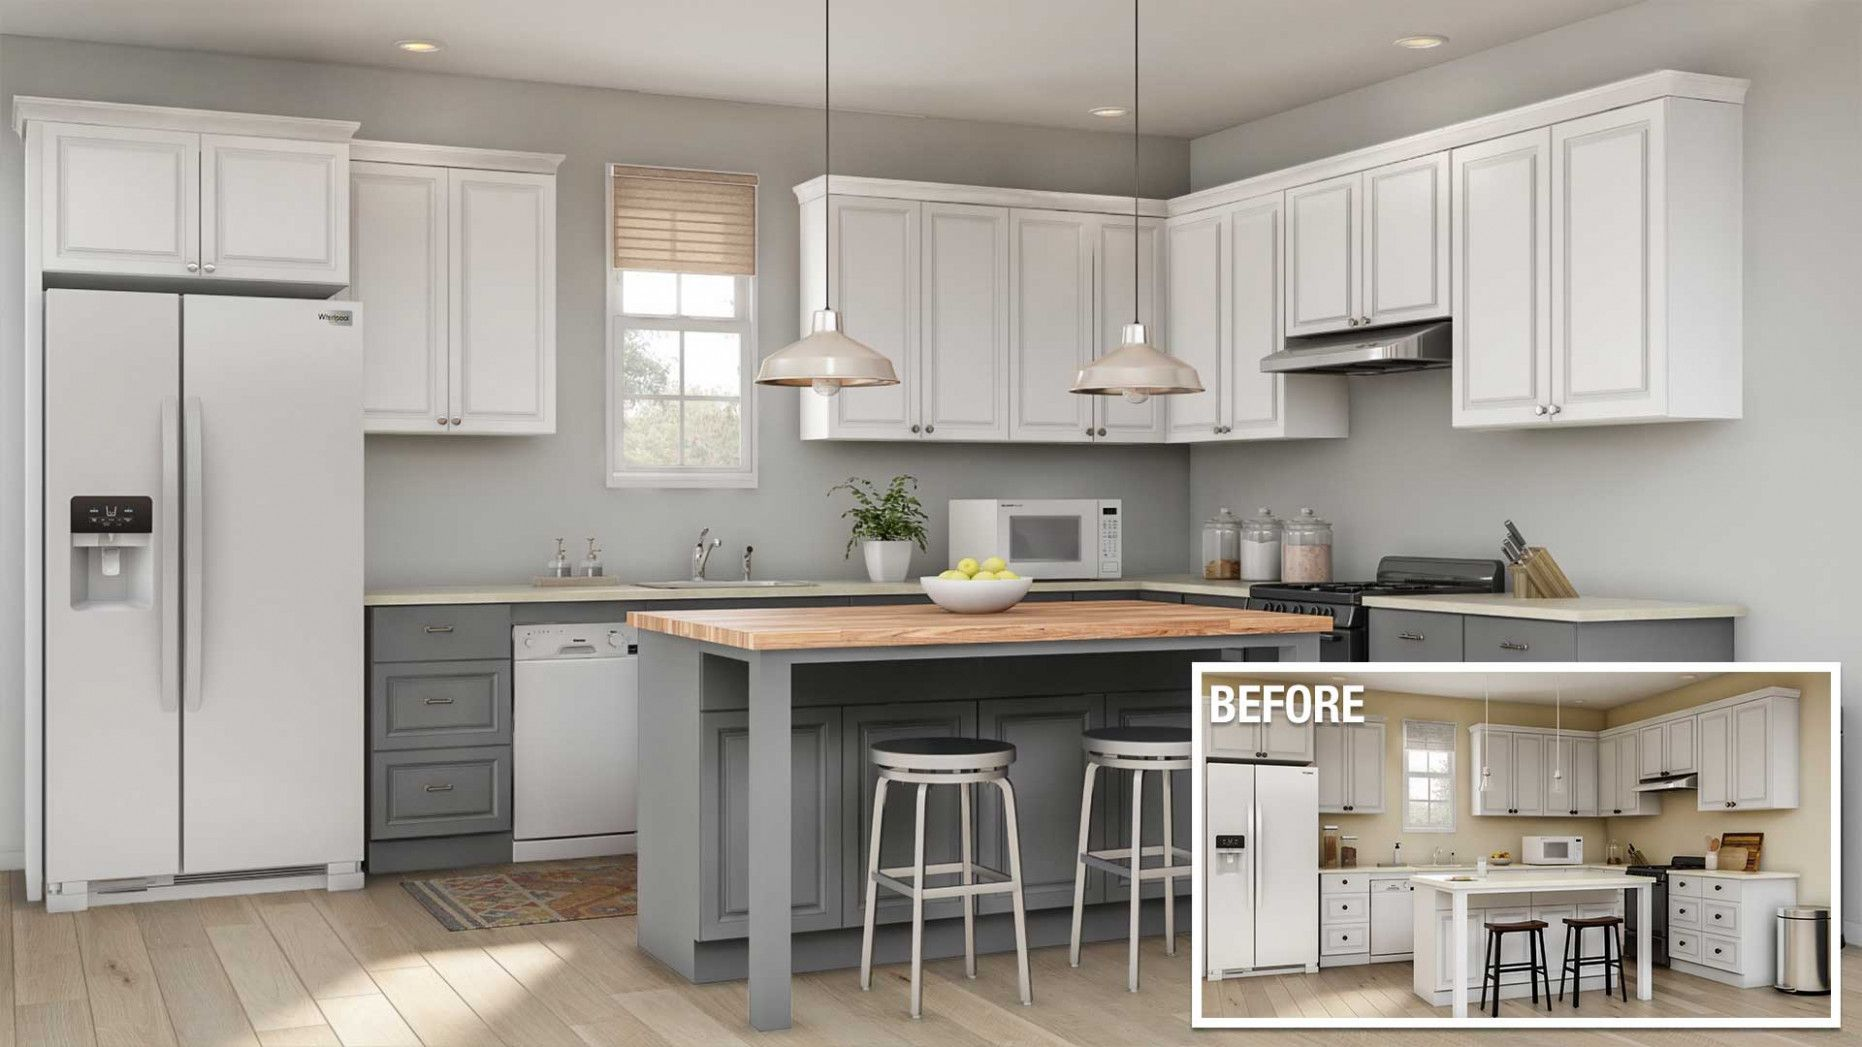 15 Facts You Never Knew About Cost Of 15 By 15 Kitchen Cabinets Home Depot Kitchen Remodel Home Depot Kitchen Kitchen Remodel Cost